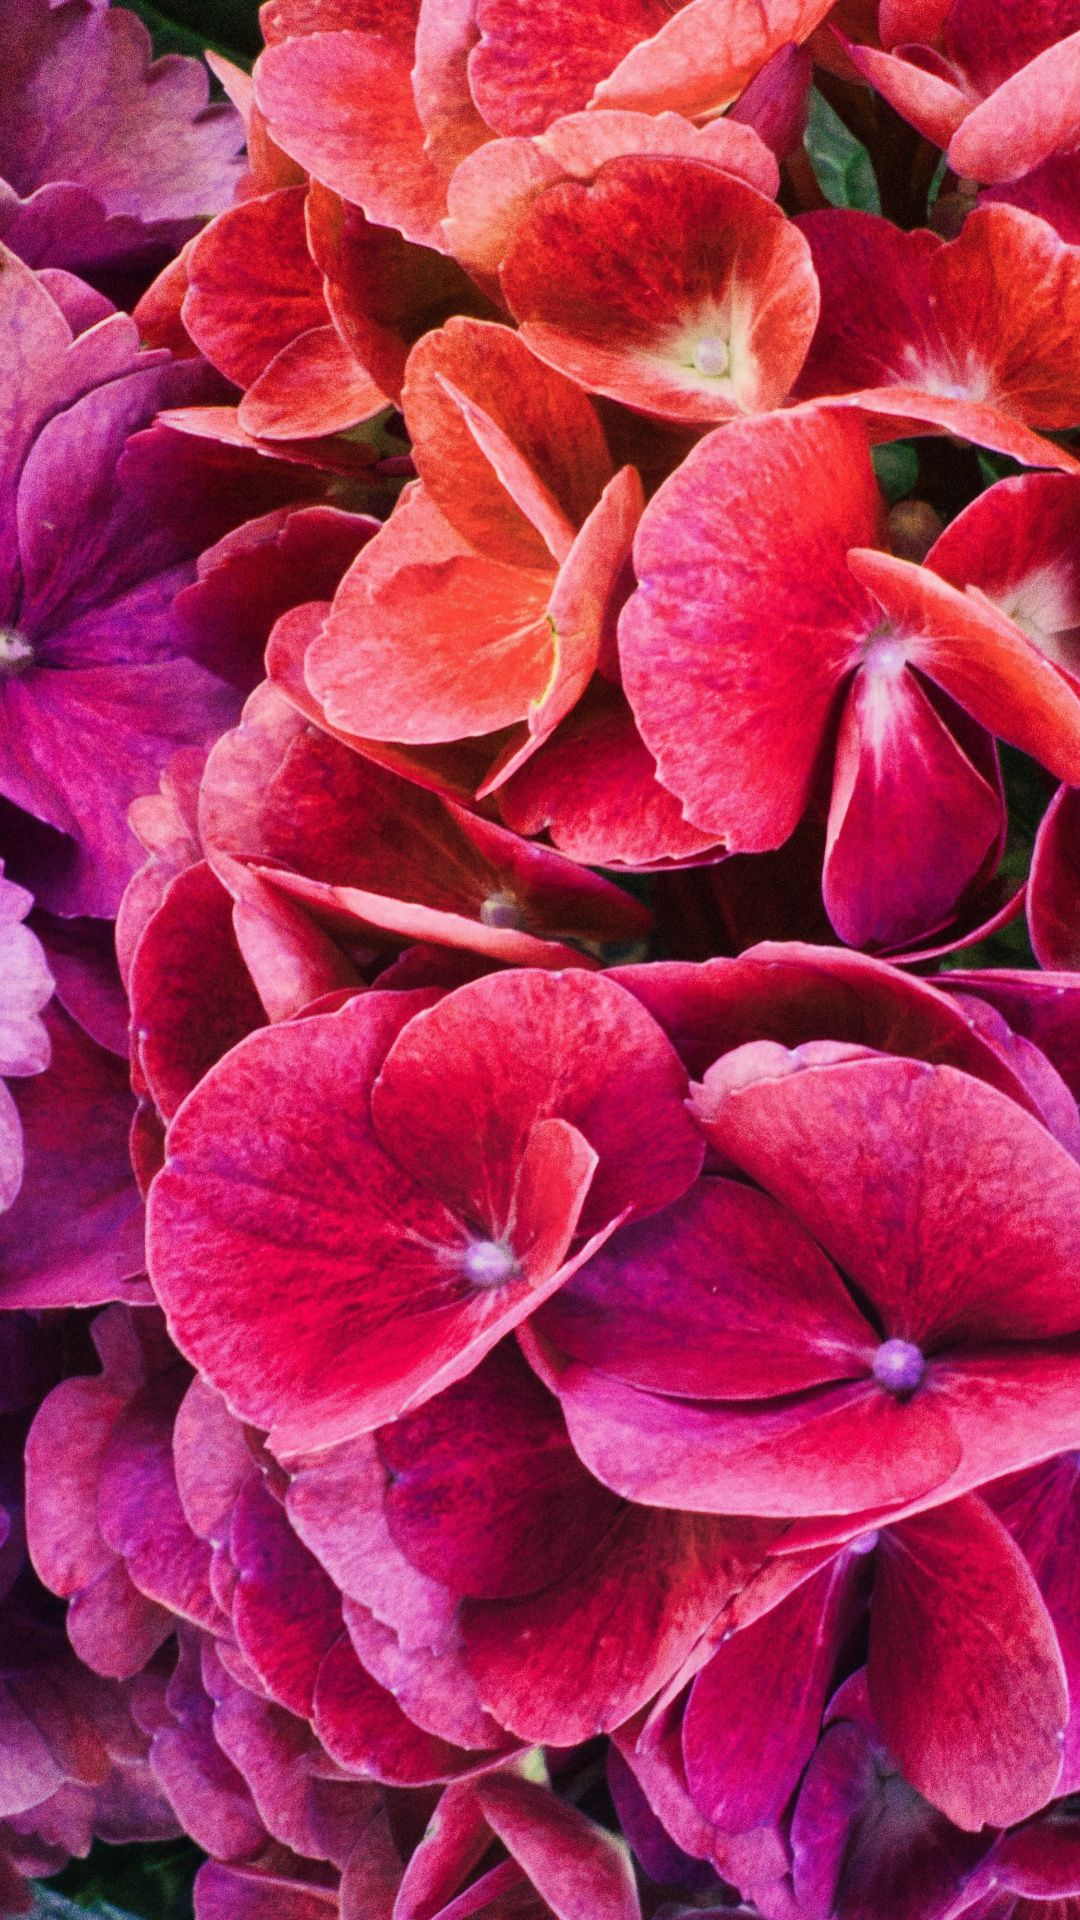 Colorful Flowers Close Up Hydrangeas Wallpaper Hydrangea Wallpaper Flower Close Up Flowers